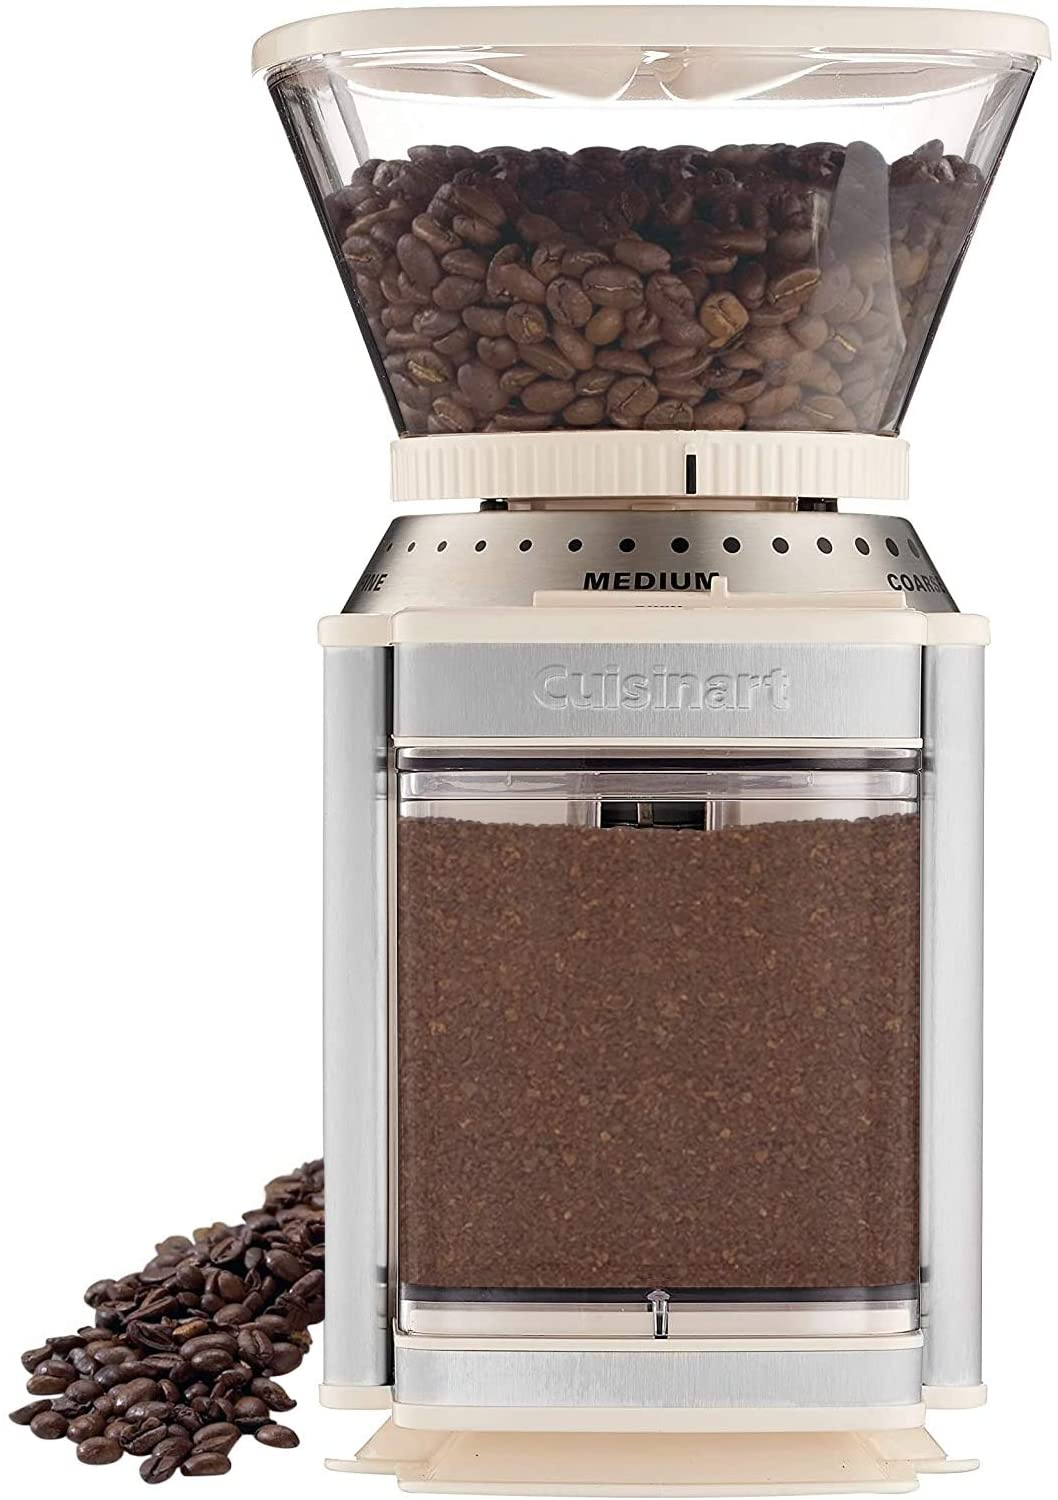 7 Most desired Best coffee grinder for Chemex- Experts choice 4